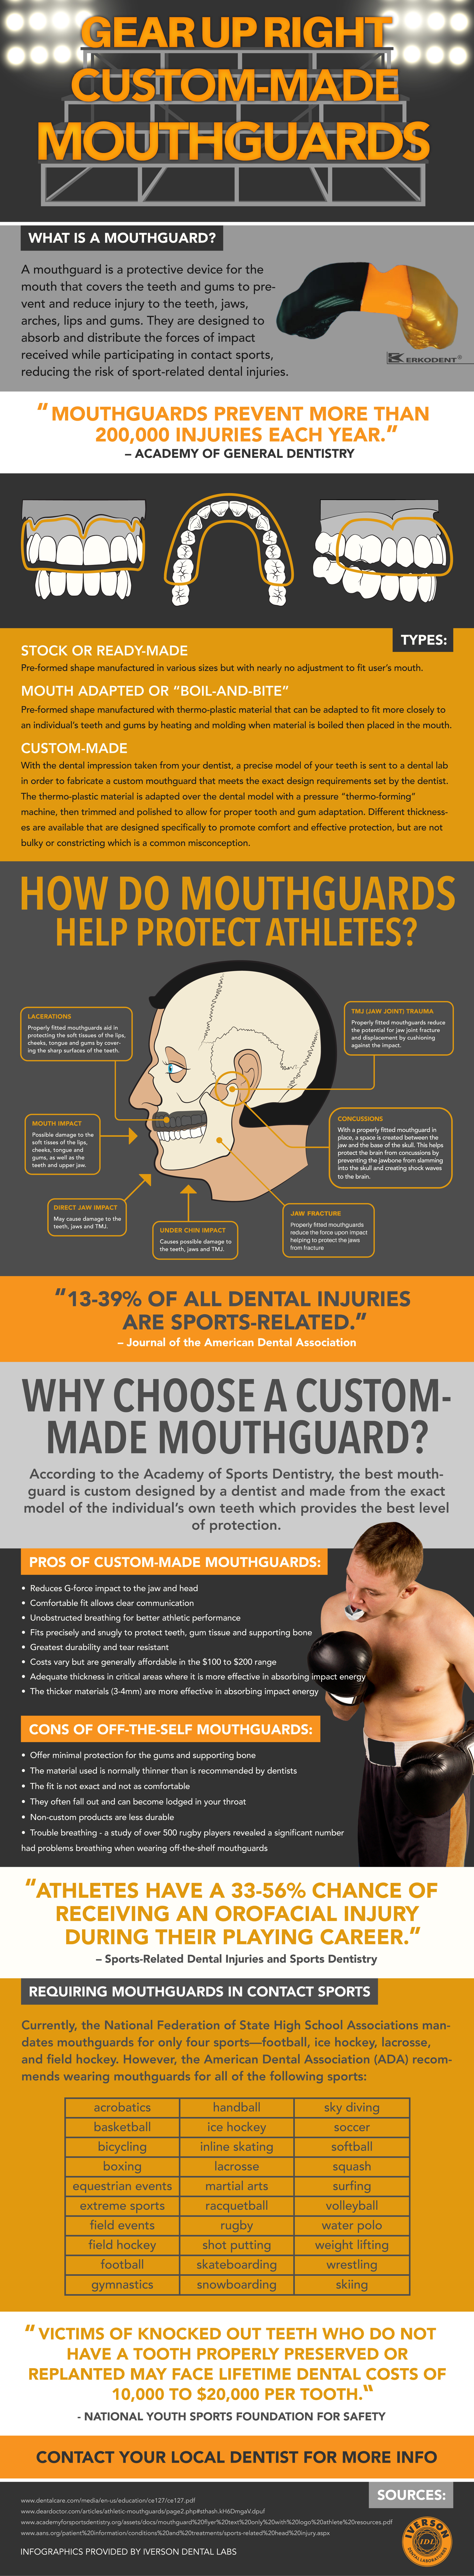 Dental-related injuries can be avoided using custom-made mouthguards